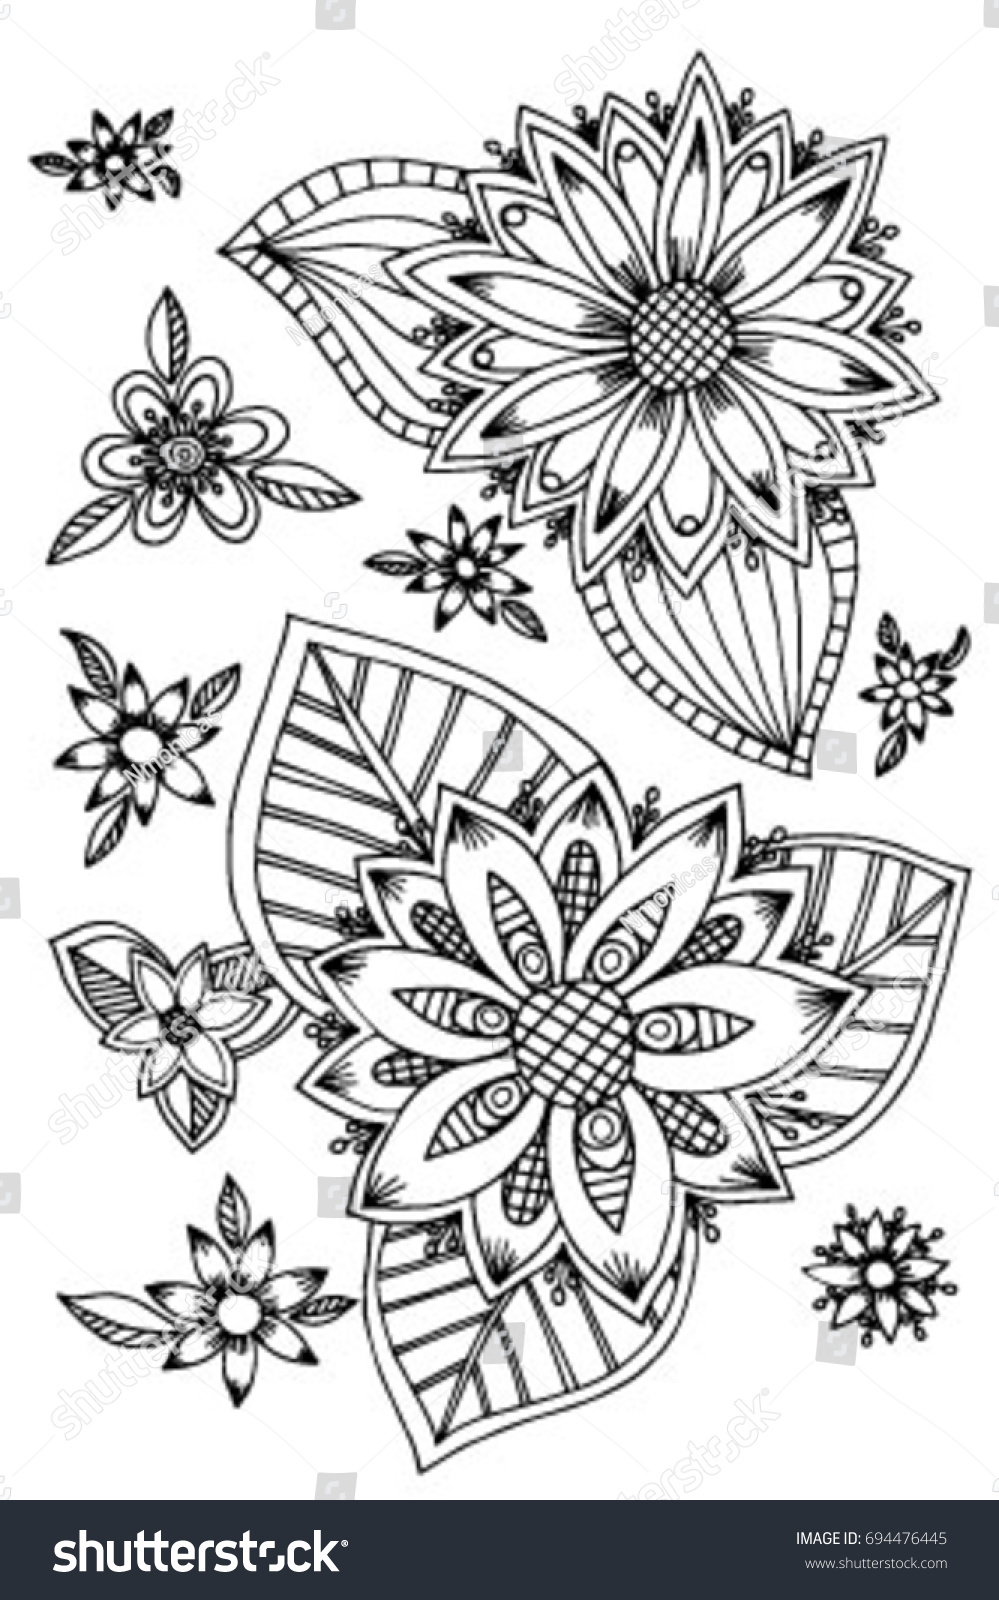 Coloring Page For Adults Flowers